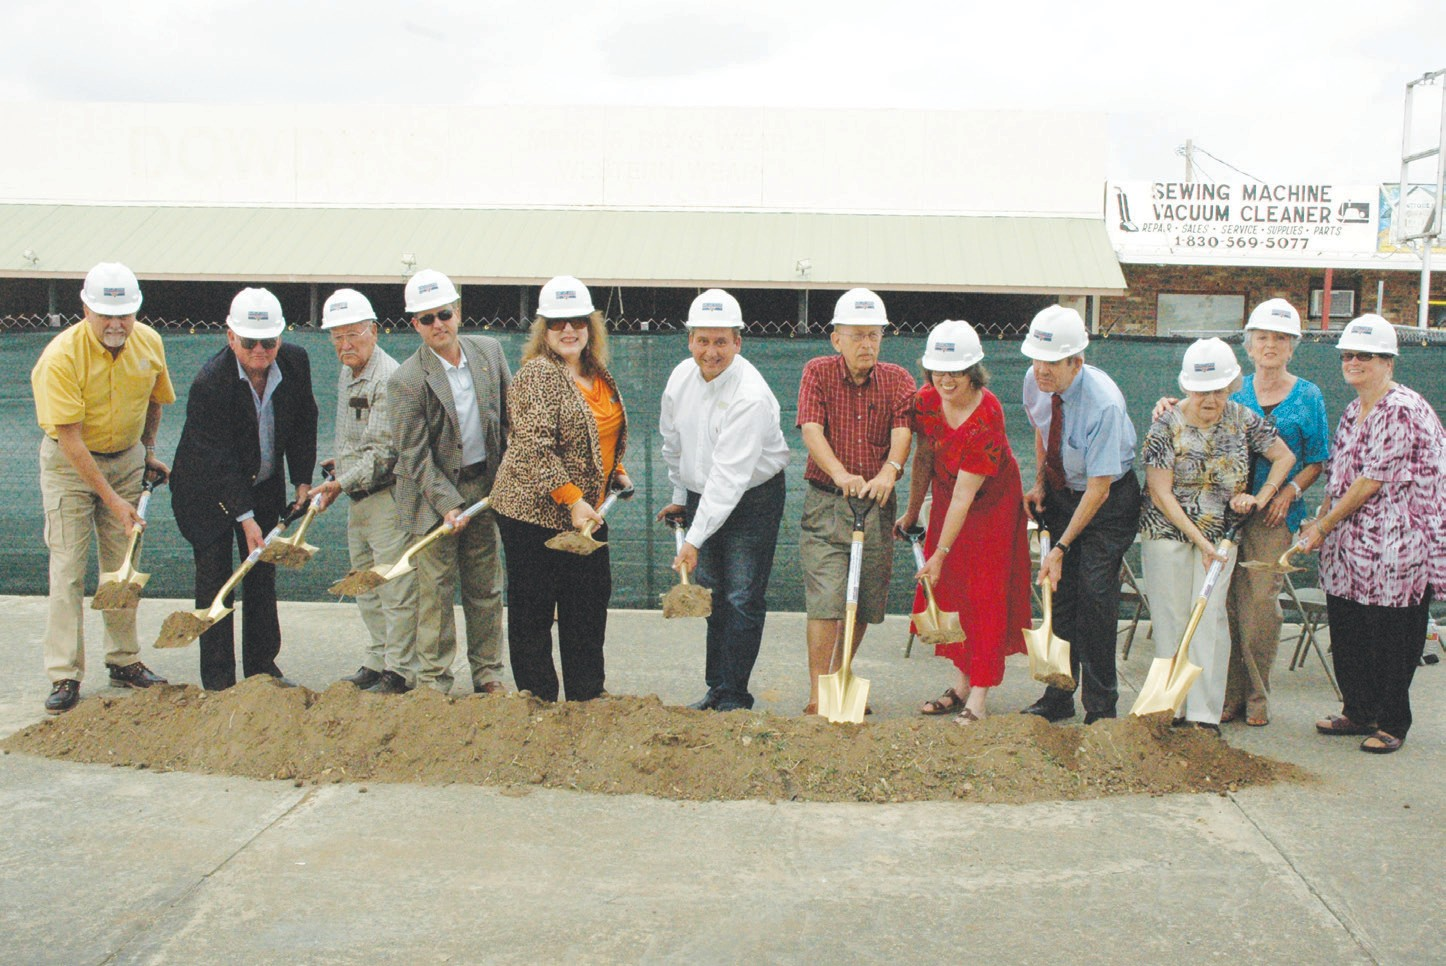 "Digging up some ceremonius dirt to launch the official start of the building of the Pleasanton Civic Center and Library are, from left, former mayors Bob Hurley and Bill Carroll, Council member Abraham Saenz, Mayor Clint Powell, Council members Jeanne Israel, J.R. Gallegos, Roger Garza, Kathy Coronado, Jimmy Magel and members of the Pleasanton Community Center group Dorothy Haverlah (also a former council member), Patsy Troell and Library Director Diana Guthrie. The buildings should be completed by February of 2014. Mayor Powell addressed the crowd that had gathered acknowleging that these public servants have been working a while to make this happen. ""Today we are here to celebrate the fact that we came together as a community – as a council and we're getting it done,"" said Powell."